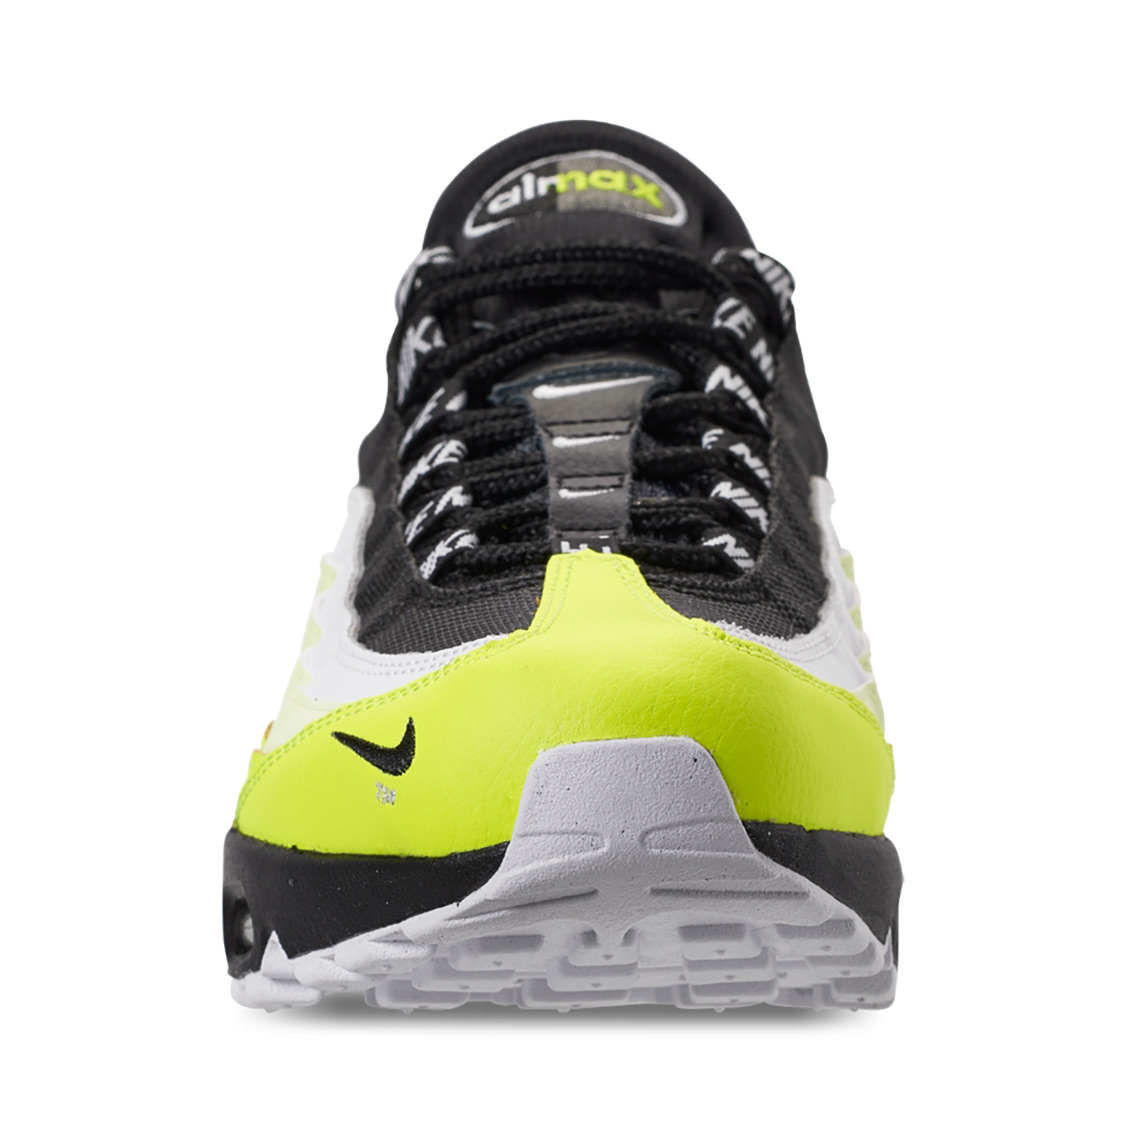 promo code 816b1 a0804 Nike Air Max 95. Release Date  November 11th, 2018  170. Color  Volt Black-Volt  Glow-Barely Volt Style Code  538416-701. Advertisement. Advertisement